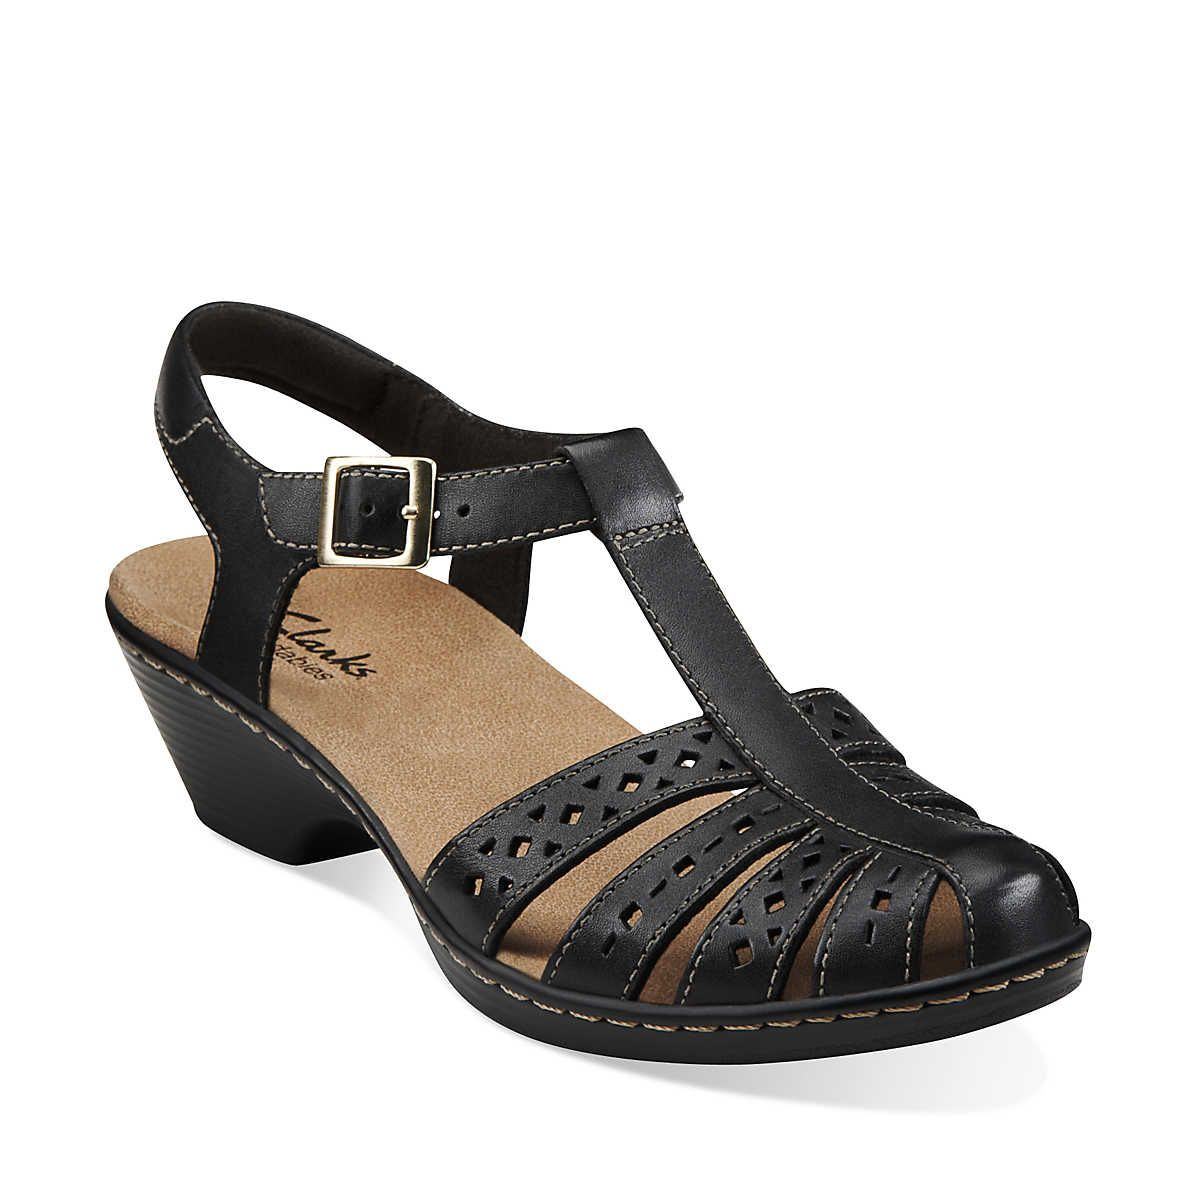 Wendy Lily in Black Leather Womens Sandals from Clarks